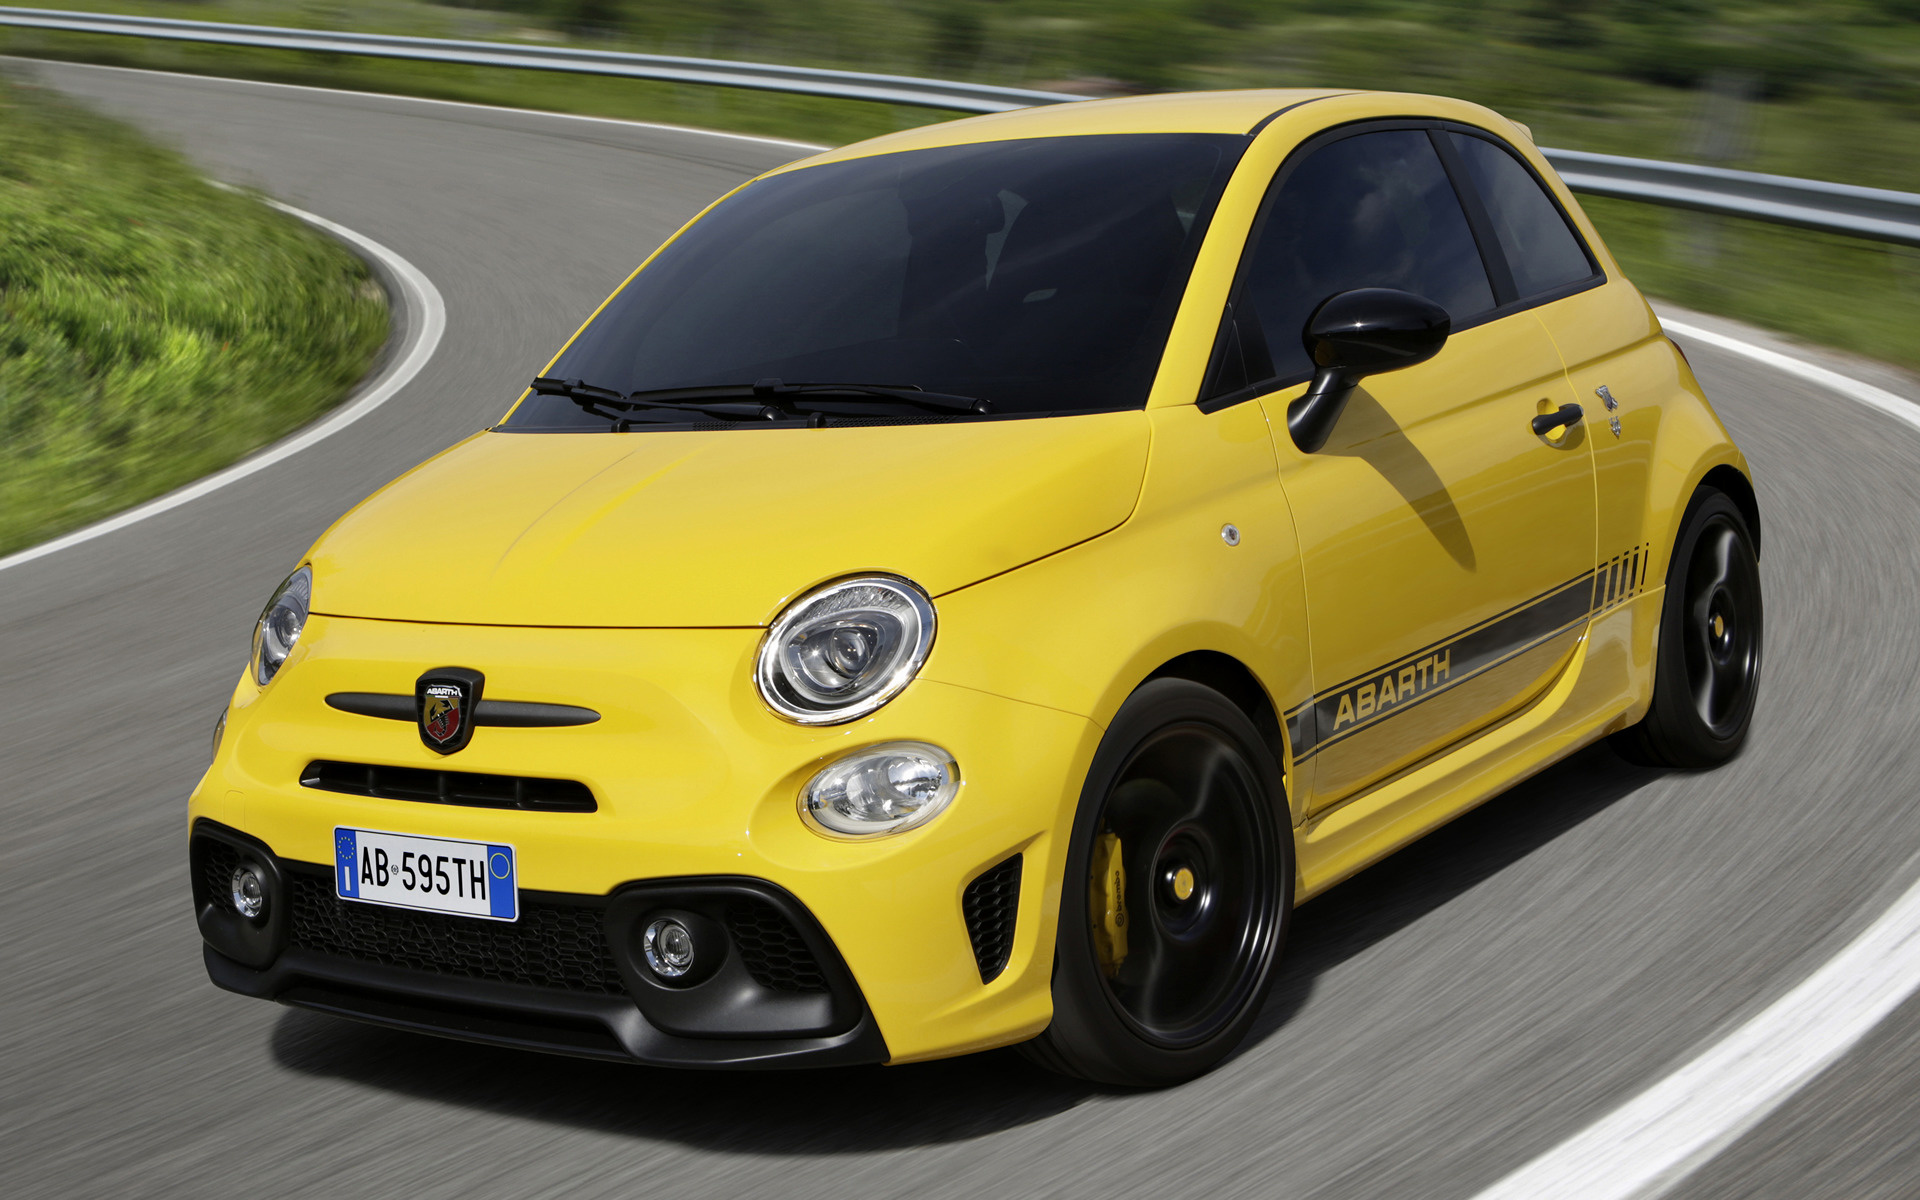 2016 Fiat 500c Riva in addition 2016 Abarth 595  petizione besides Abarth Logo as well 2016 Chevrolet Camaro V8 50th Anniversary Eu likewise 2017 Mercedes Amg Gle 43 Us. on fiat 500 background